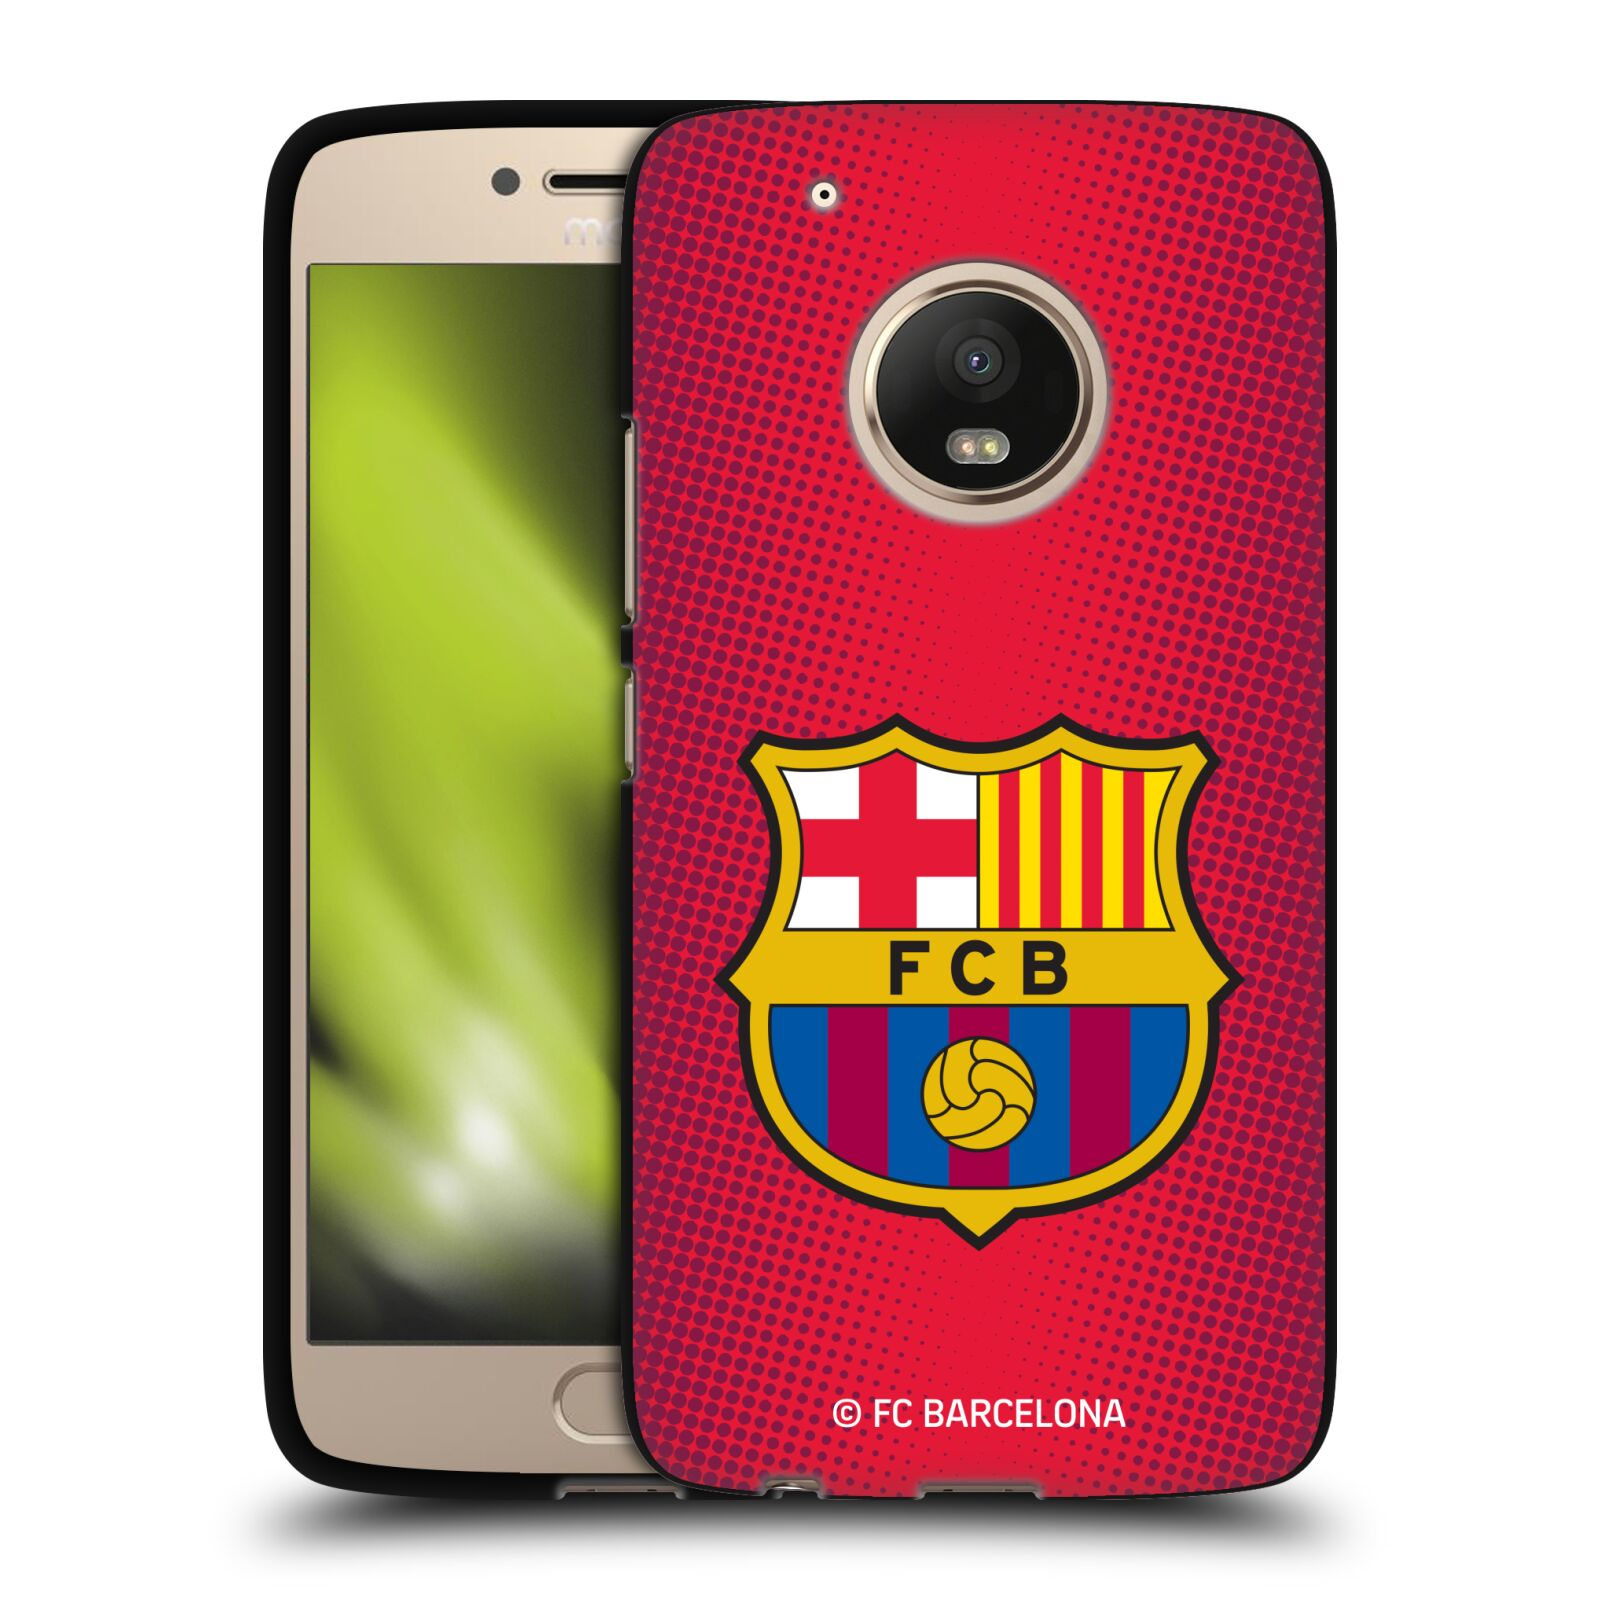 OFFICIAL-FC-BARCELONA-2017-18-CREST-BLACK-SOFT-GEL-CASE-FOR-MOTOROLA-PHONES